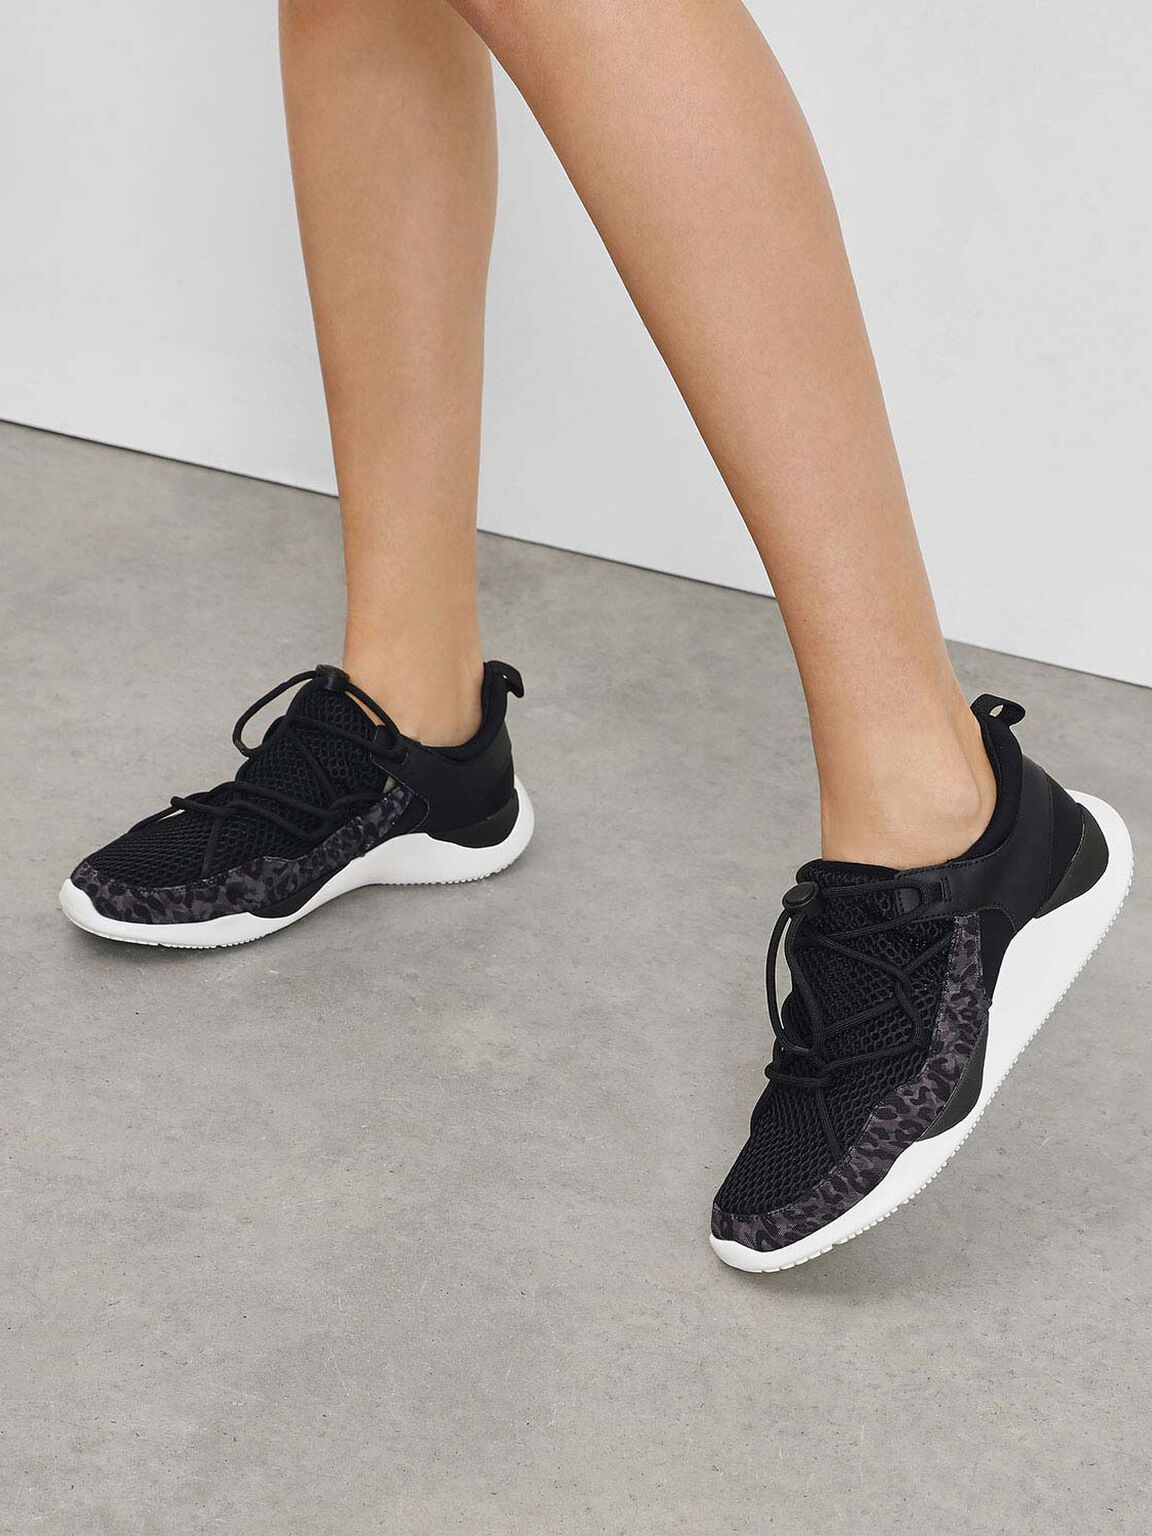 Drawstring Mesh Sneakers, Black, hi-res